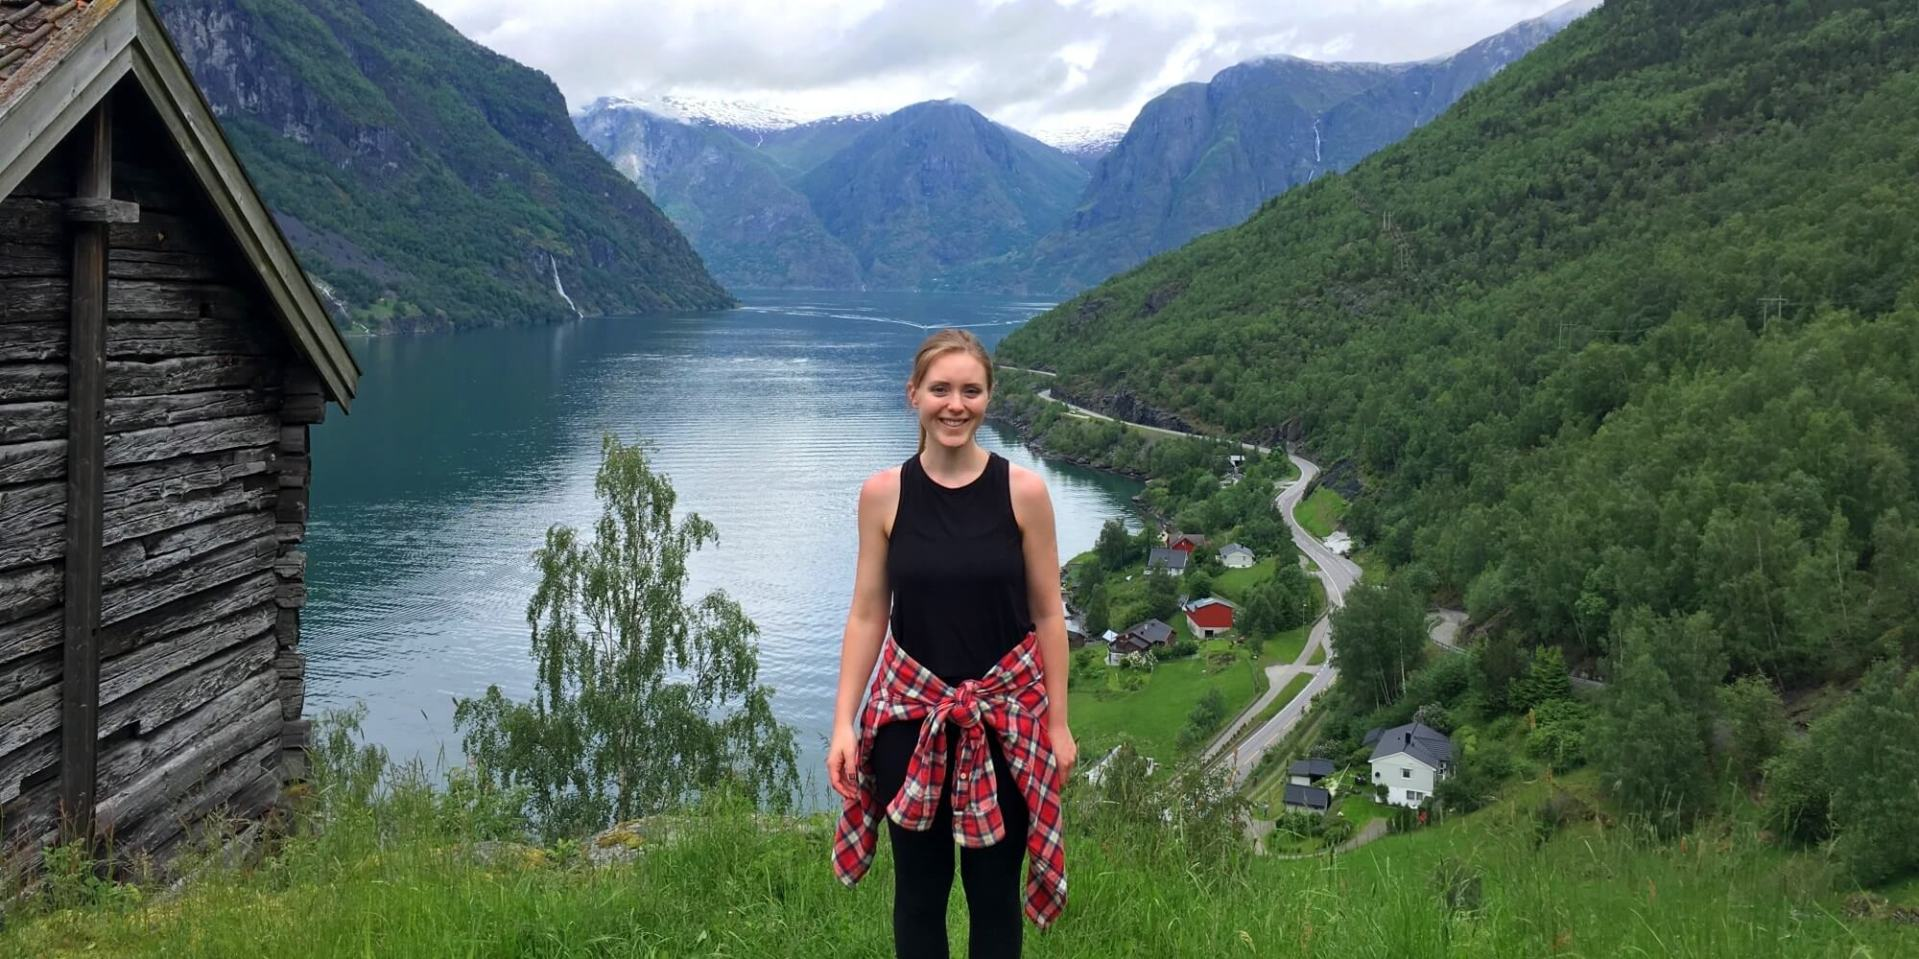 Meghan of Gone Rogue Travel blog at Otternes Farm in Norway